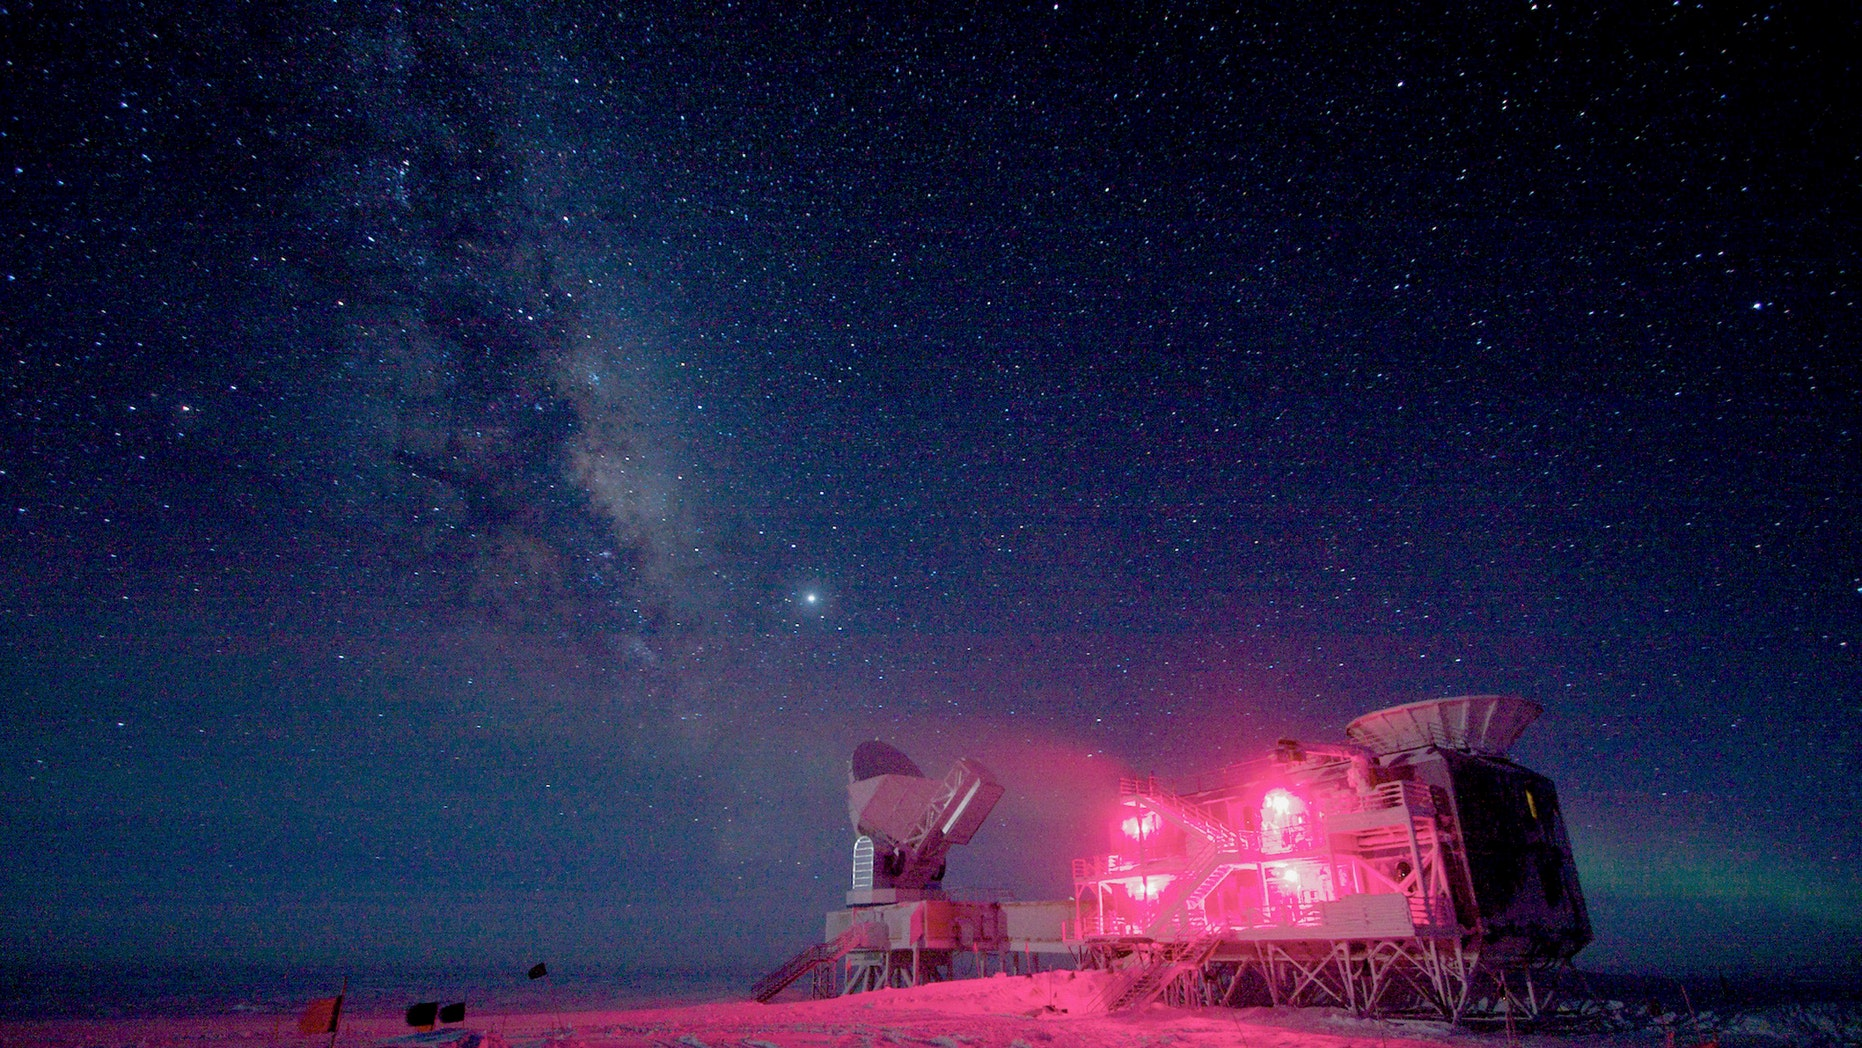 The South Pole Telescope and the BICEP Telescope at Amundsen-Scott South Pole Station in Aug. 2008 (REUTERS/Keith Vanderlinde/National Science Foundation/Handout)